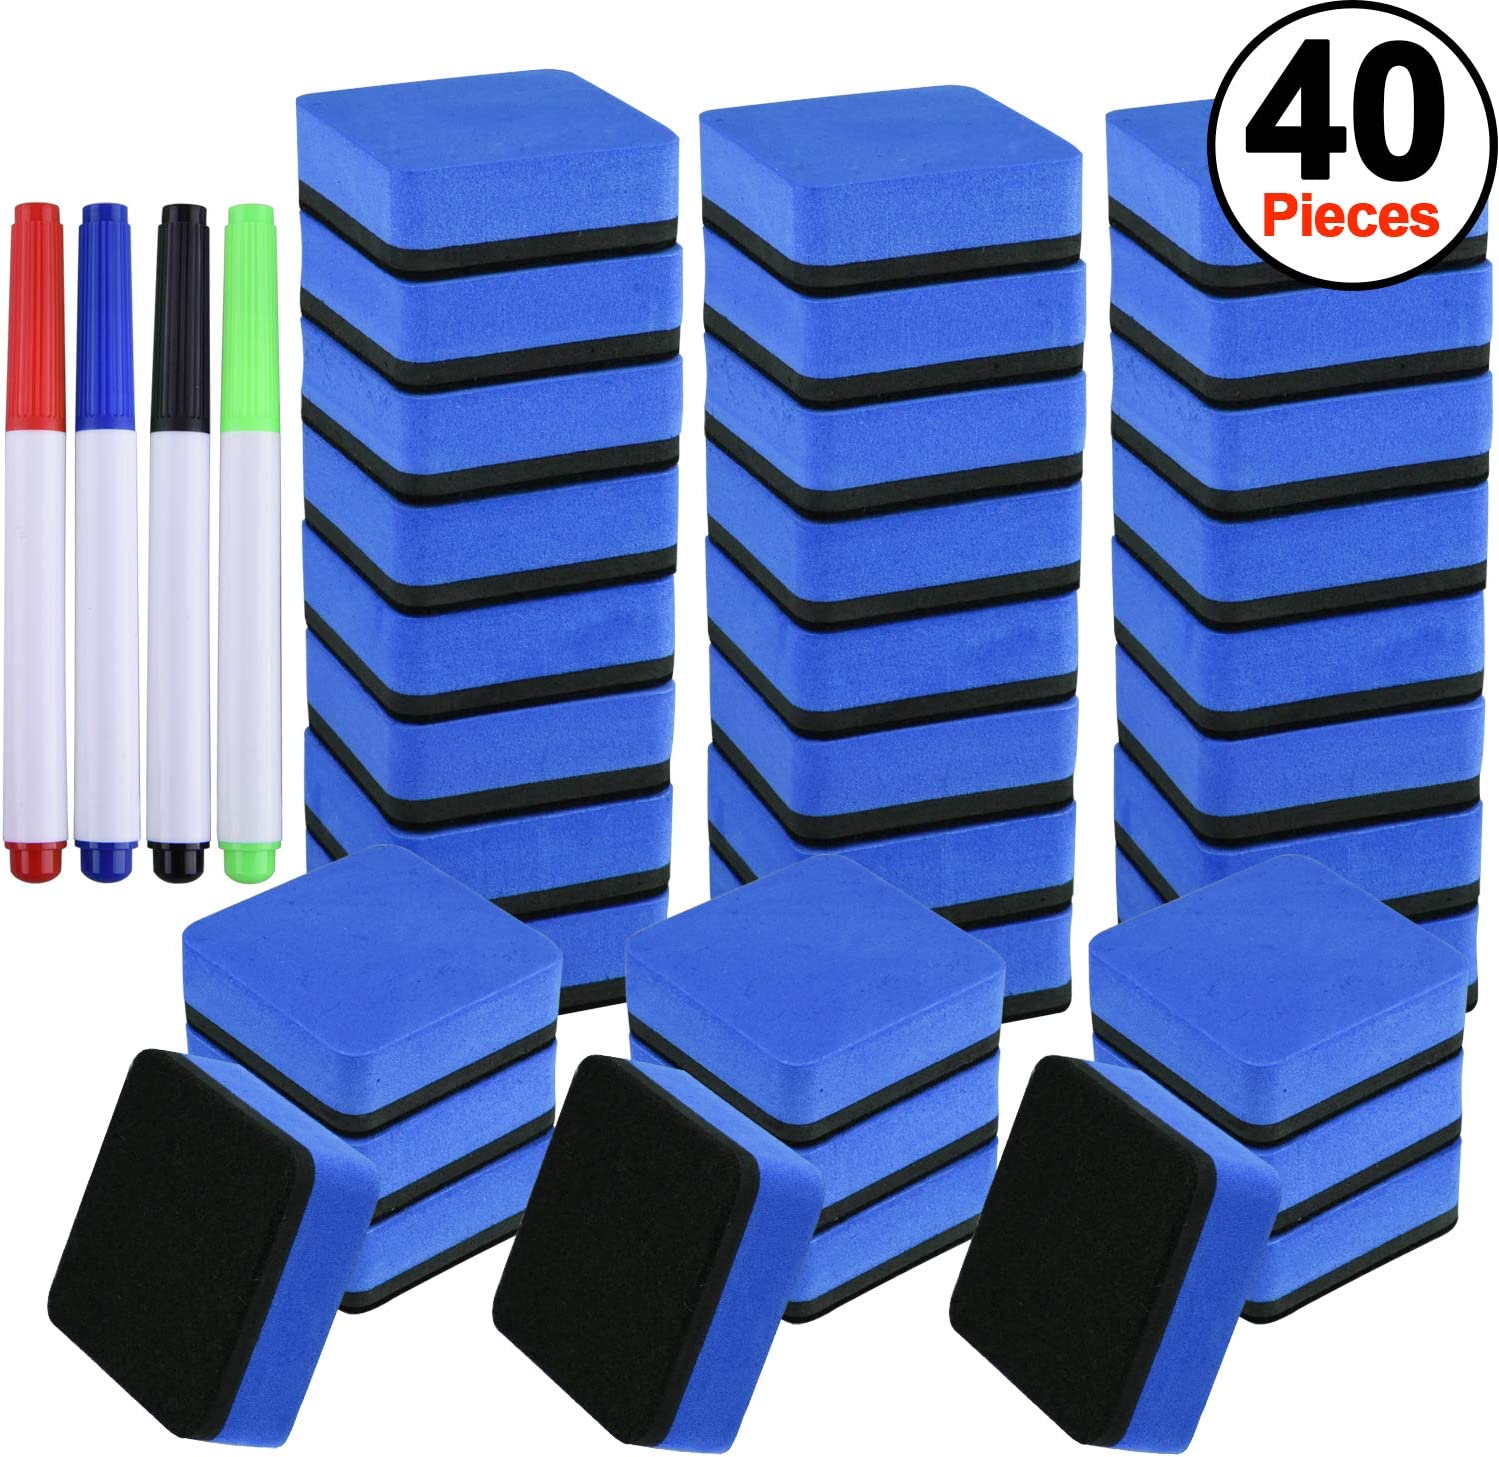 SIQUK 36 Packs Dry Erase Eraser Magnetic Whiteboard Eraser Blue Chalkboard Cleansers Wiper(1.97 x 1.97 Inches) with 4 Pieces Whiteboard Markers